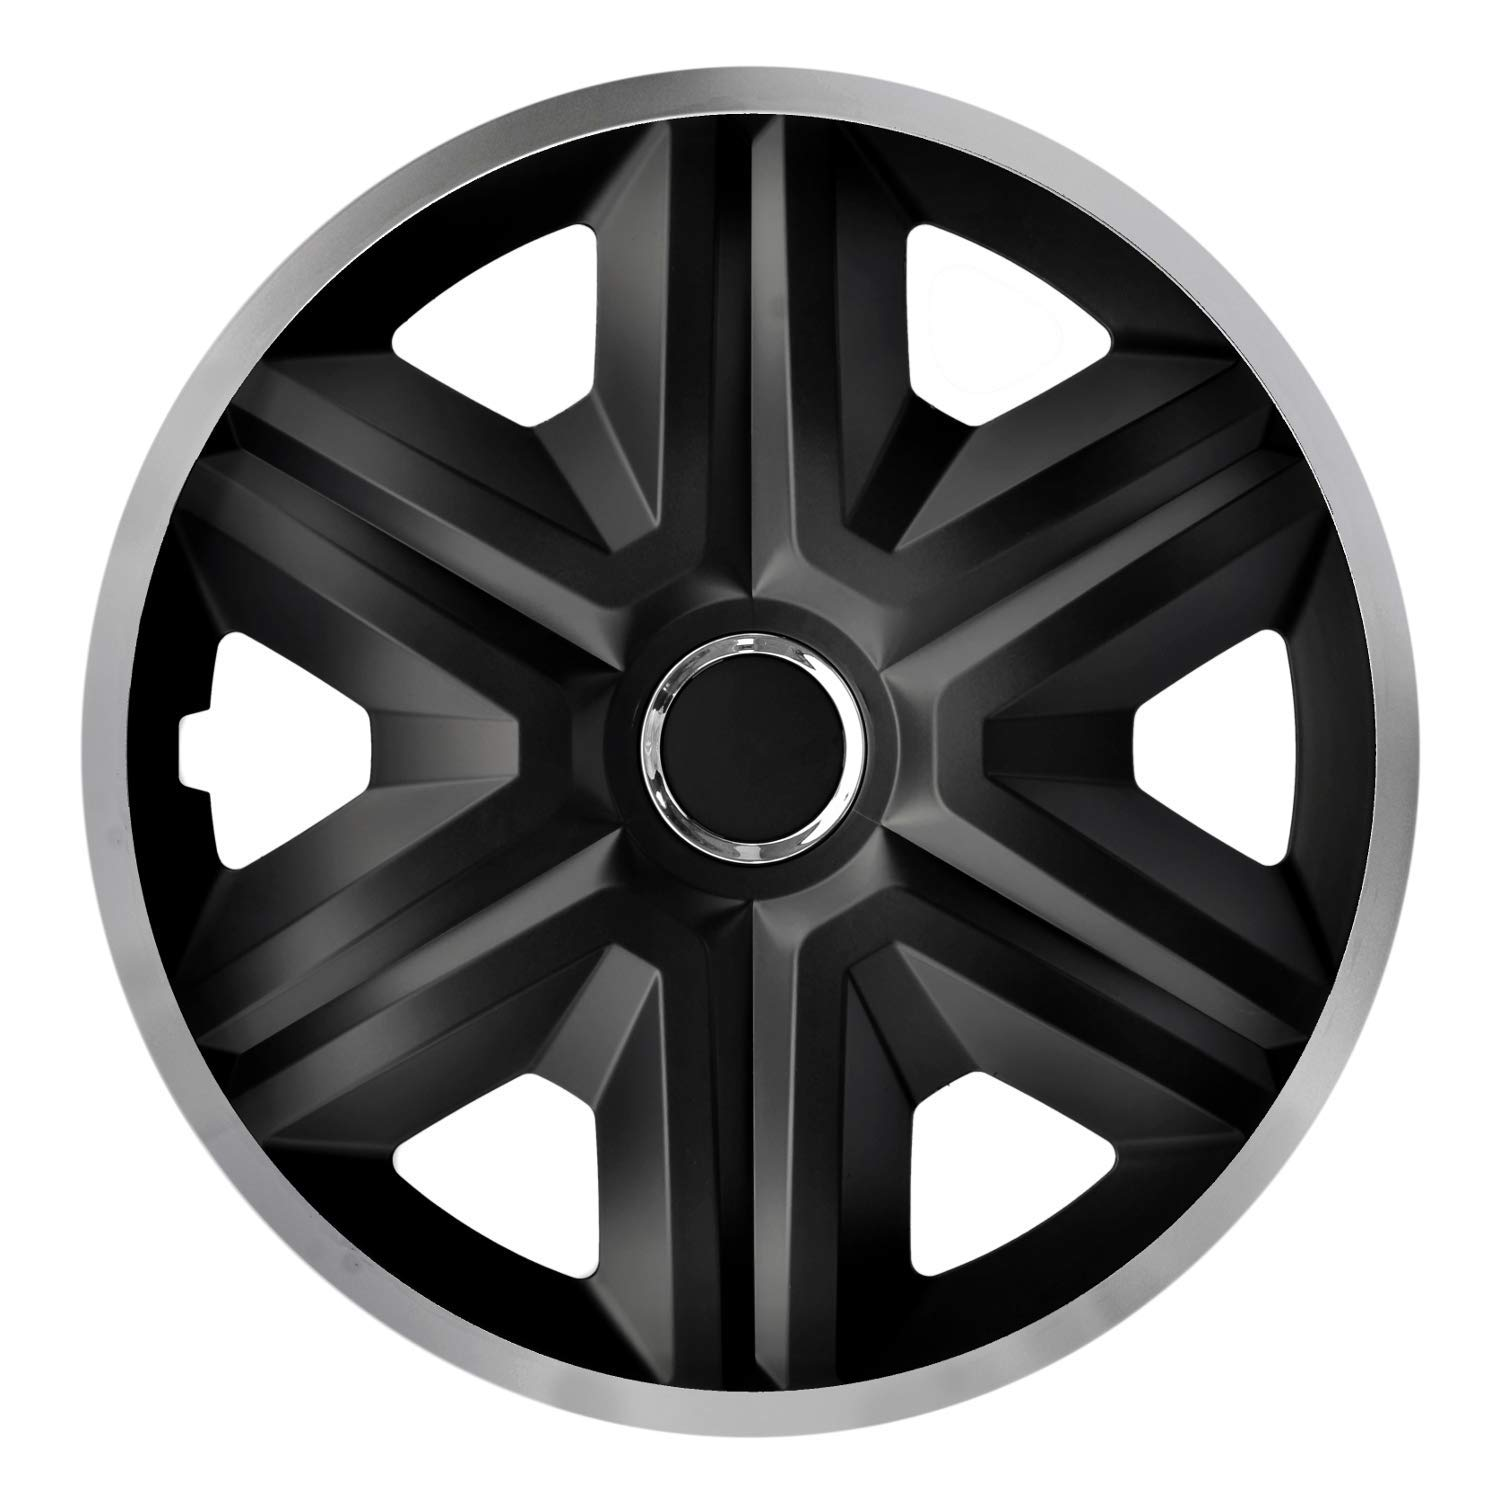 Universal Fit For Cars And Other Vehicles FAST LUX//ACTION 14 Inch Set Of 4 Luckyberg Wheel Trims